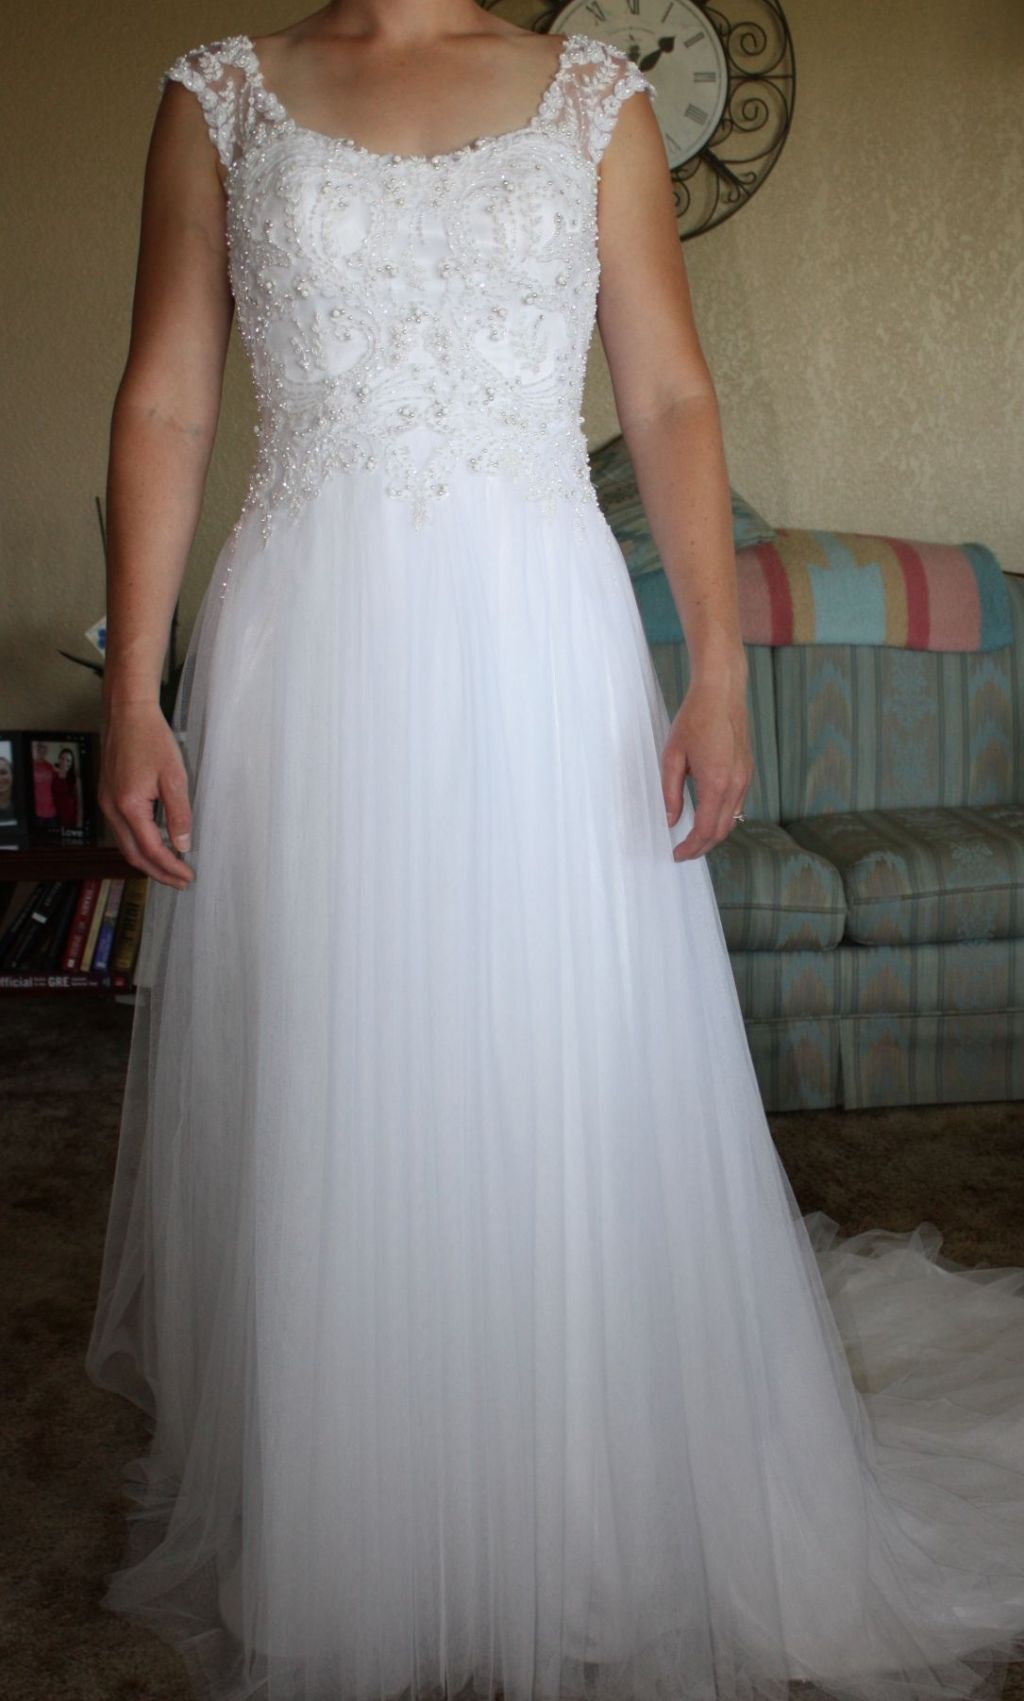 Fantastic Wedding Dress Dry Cleaning Cost Frieze - Womens Dresses ...